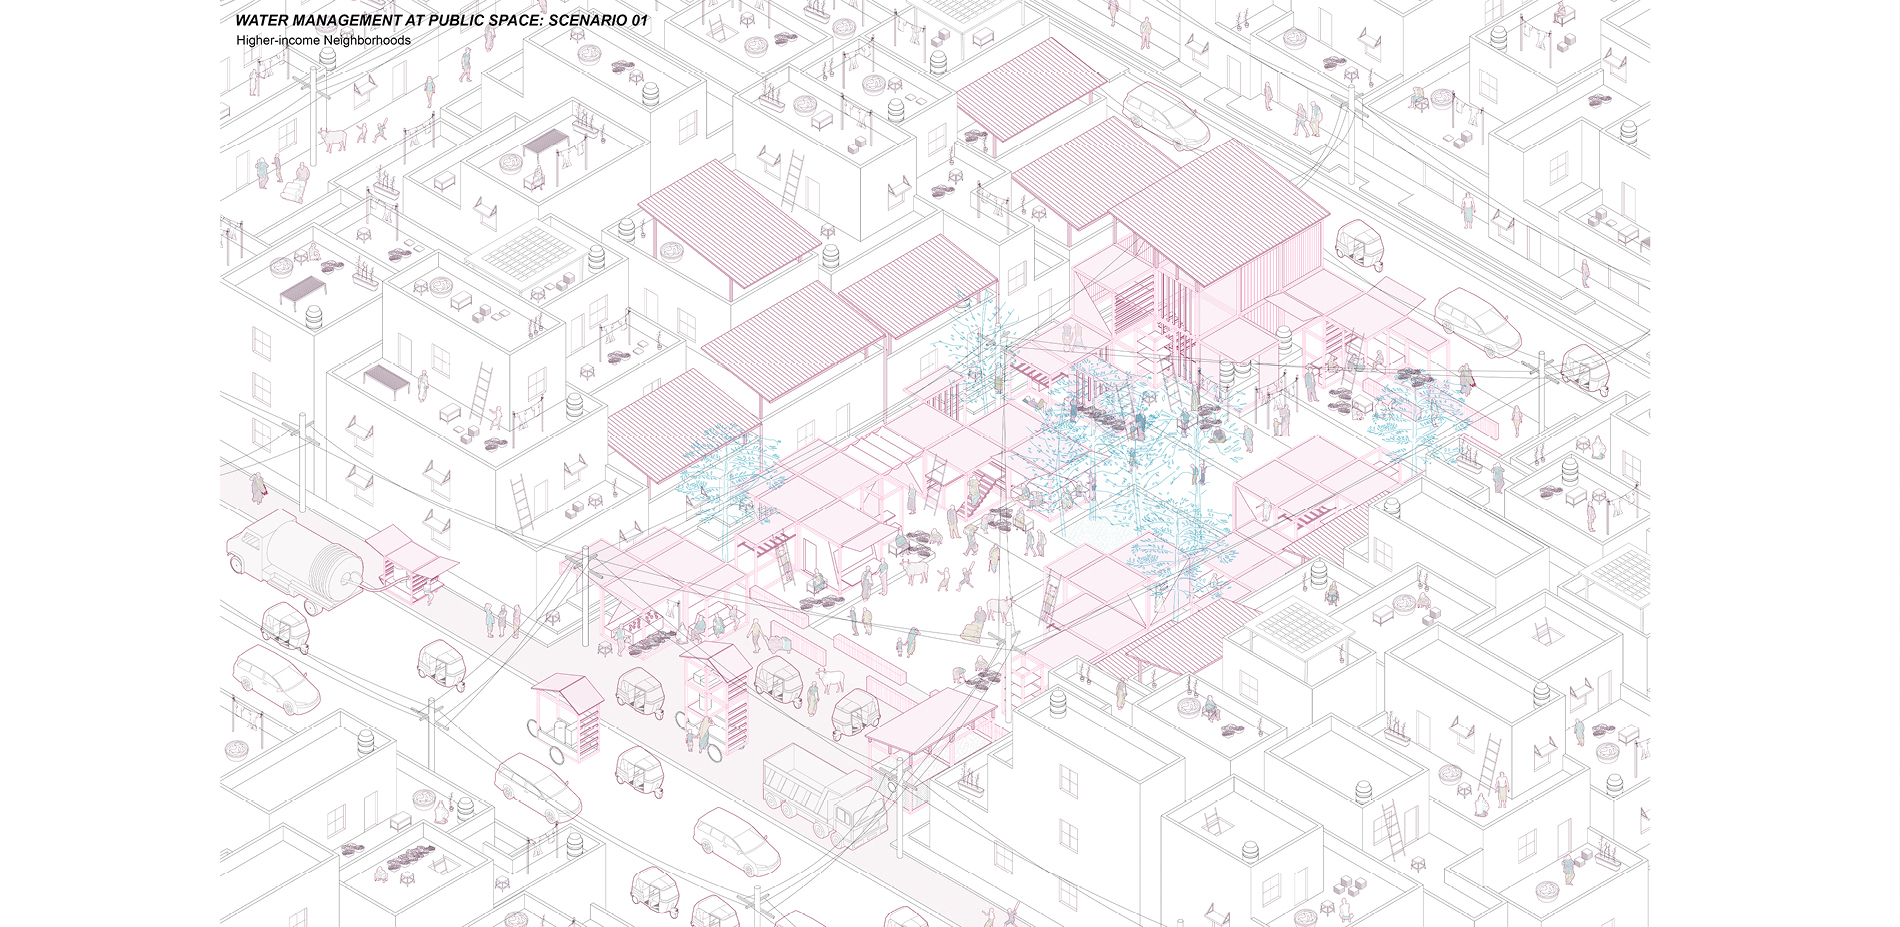 Water Management at Public Space: Higher-income Neighborhoods